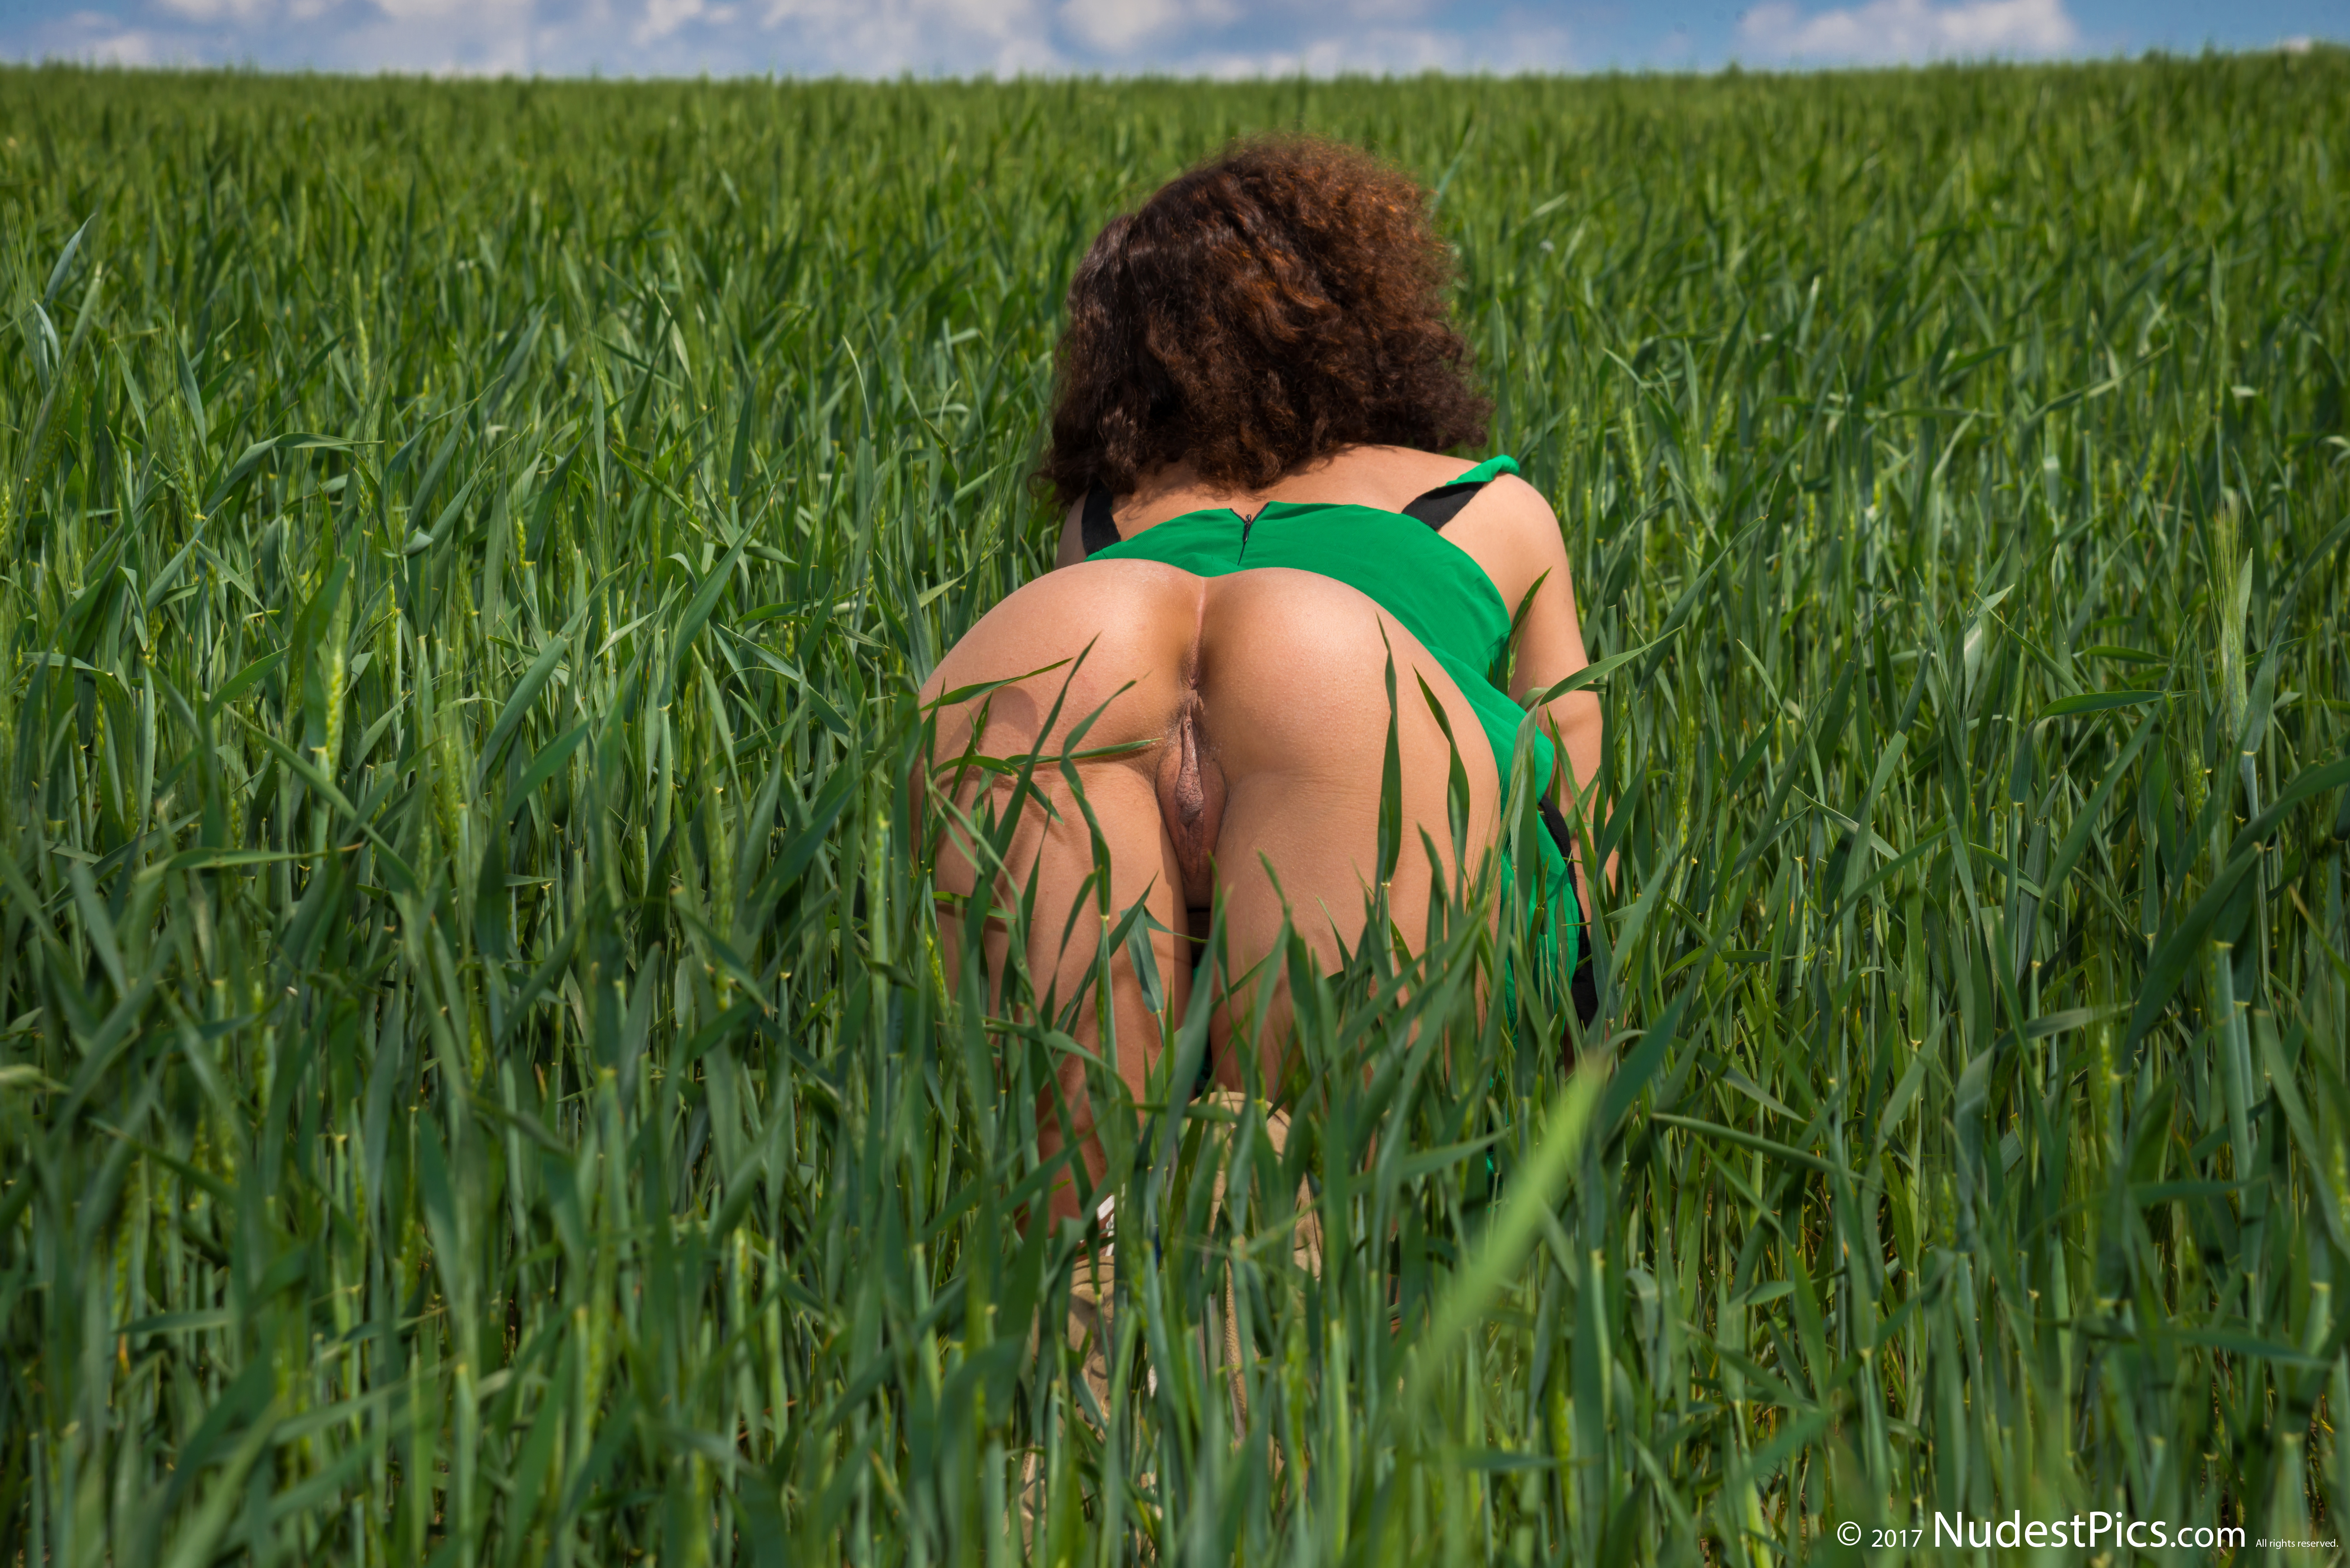 Farmer Girl Naked Butt Crawling in Green Crops HD